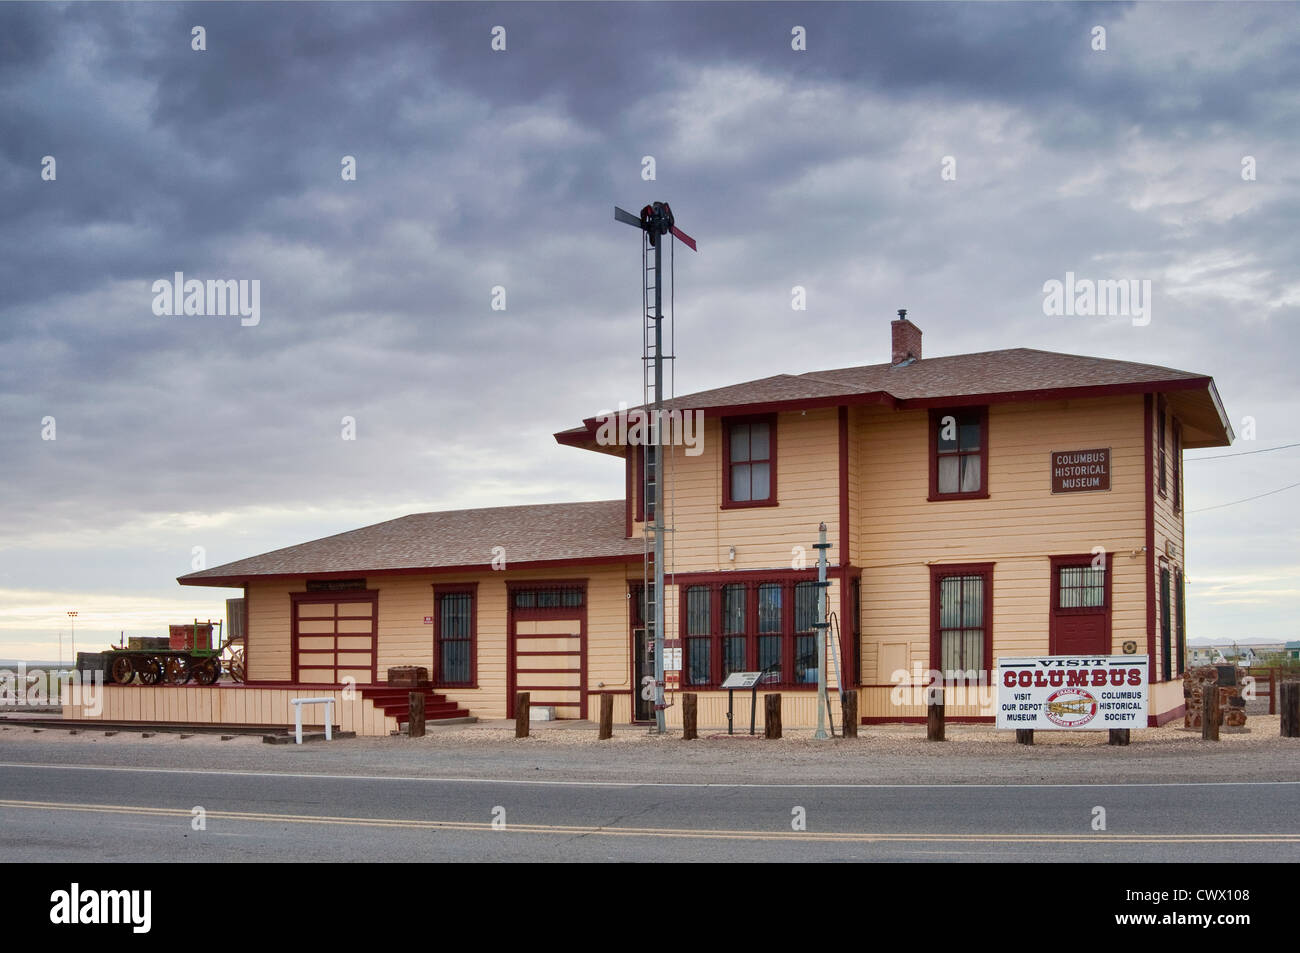 1902 Southern Pacific Railroad depot, now Columbus Historical Society Museum in Columbus, New Mexico, USA - Stock Image